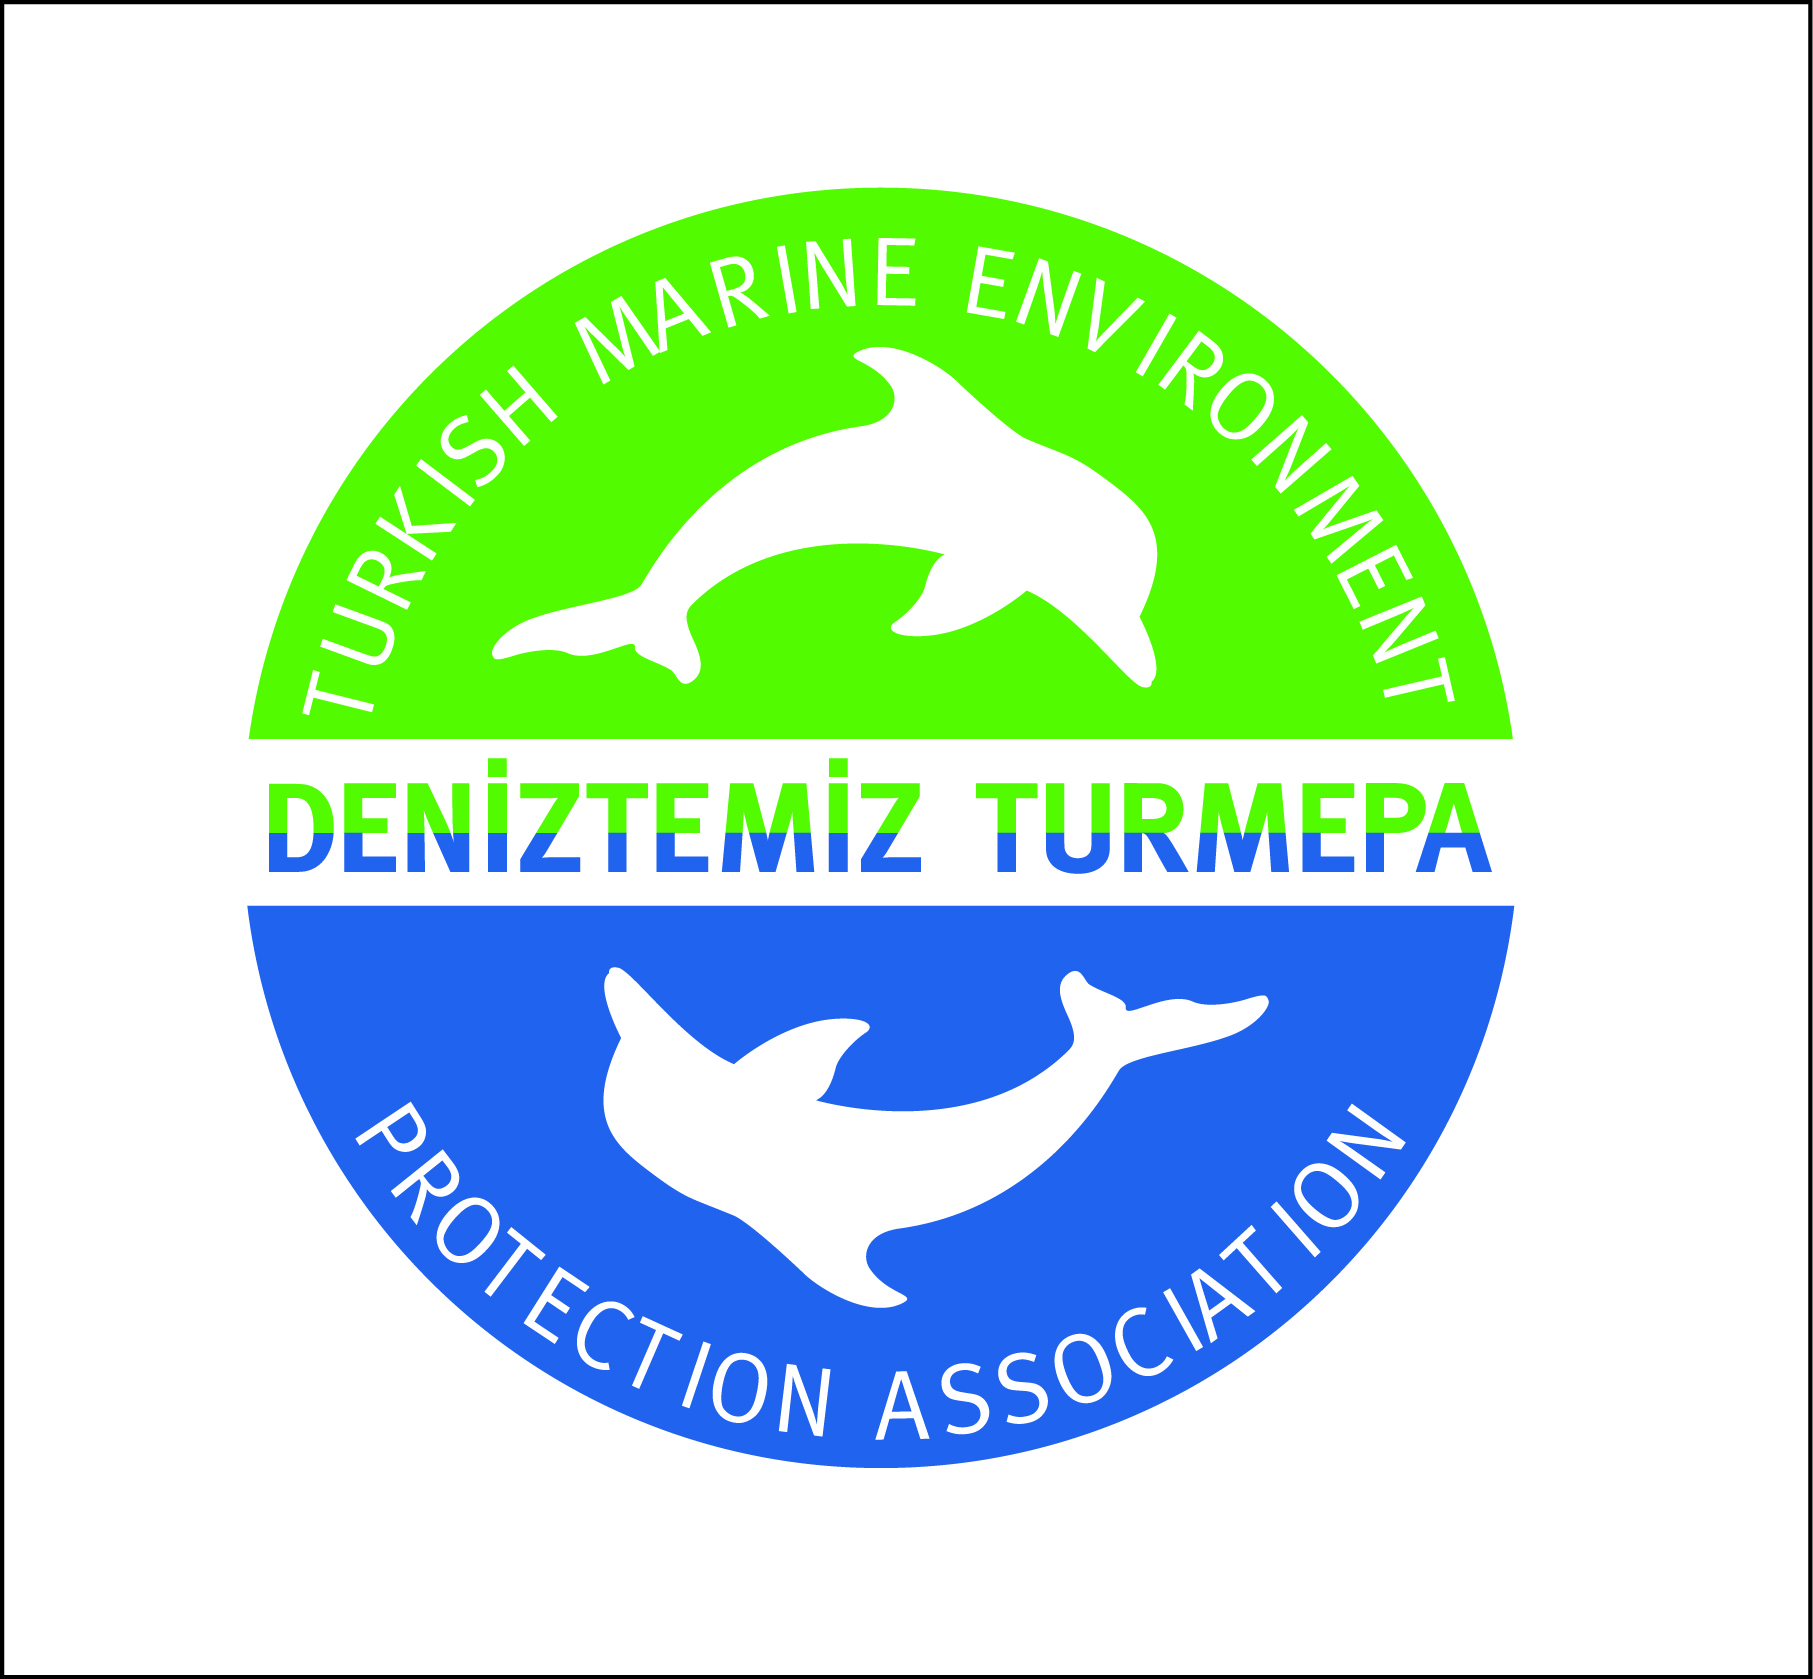 Turkish Marine Environment Protection Association – TURMEPA